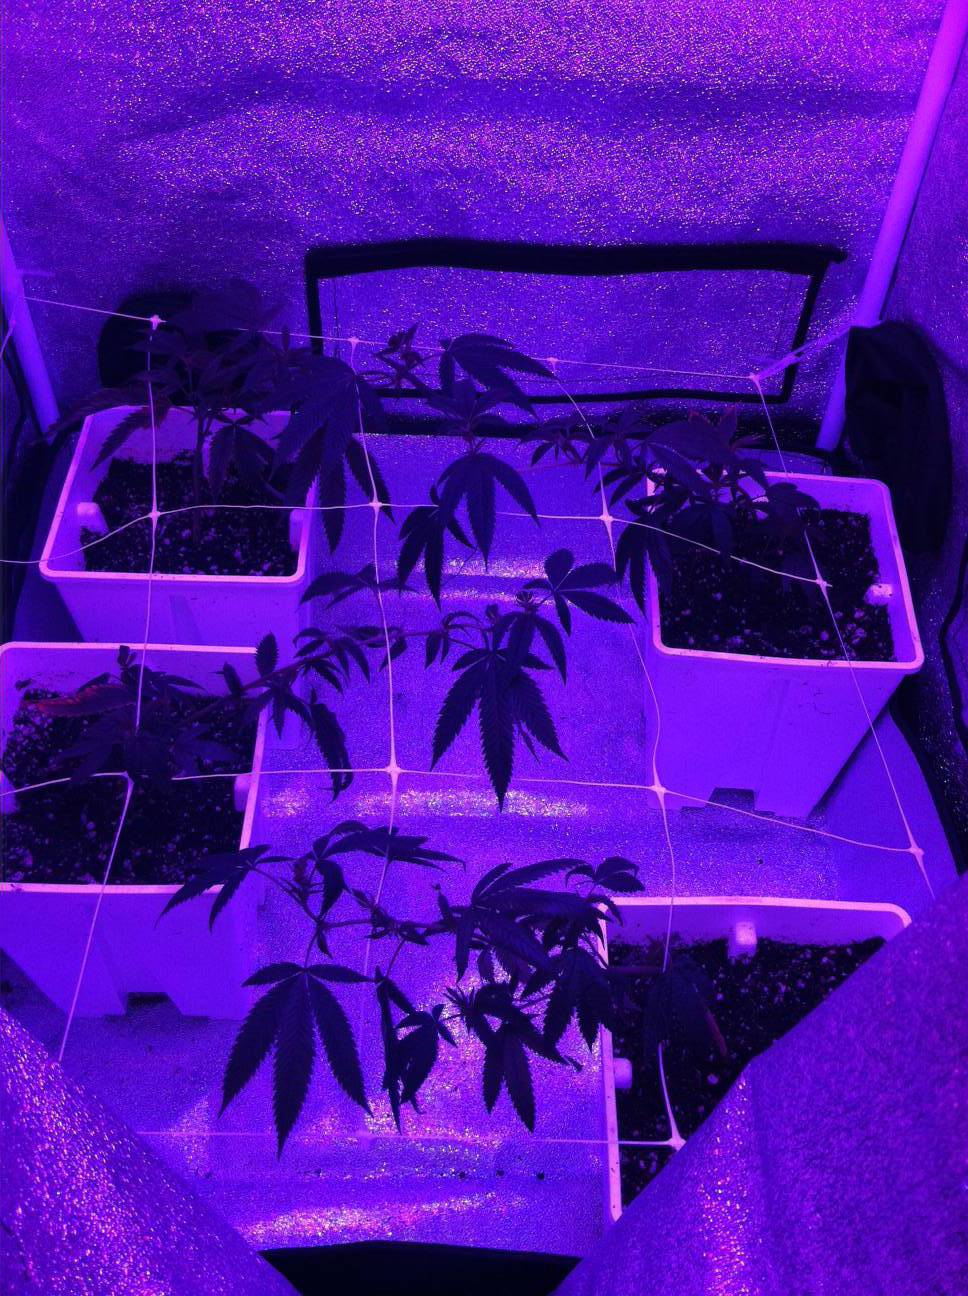 Grow Tent Unknown Led Light And 4 Og Clones Cannabis